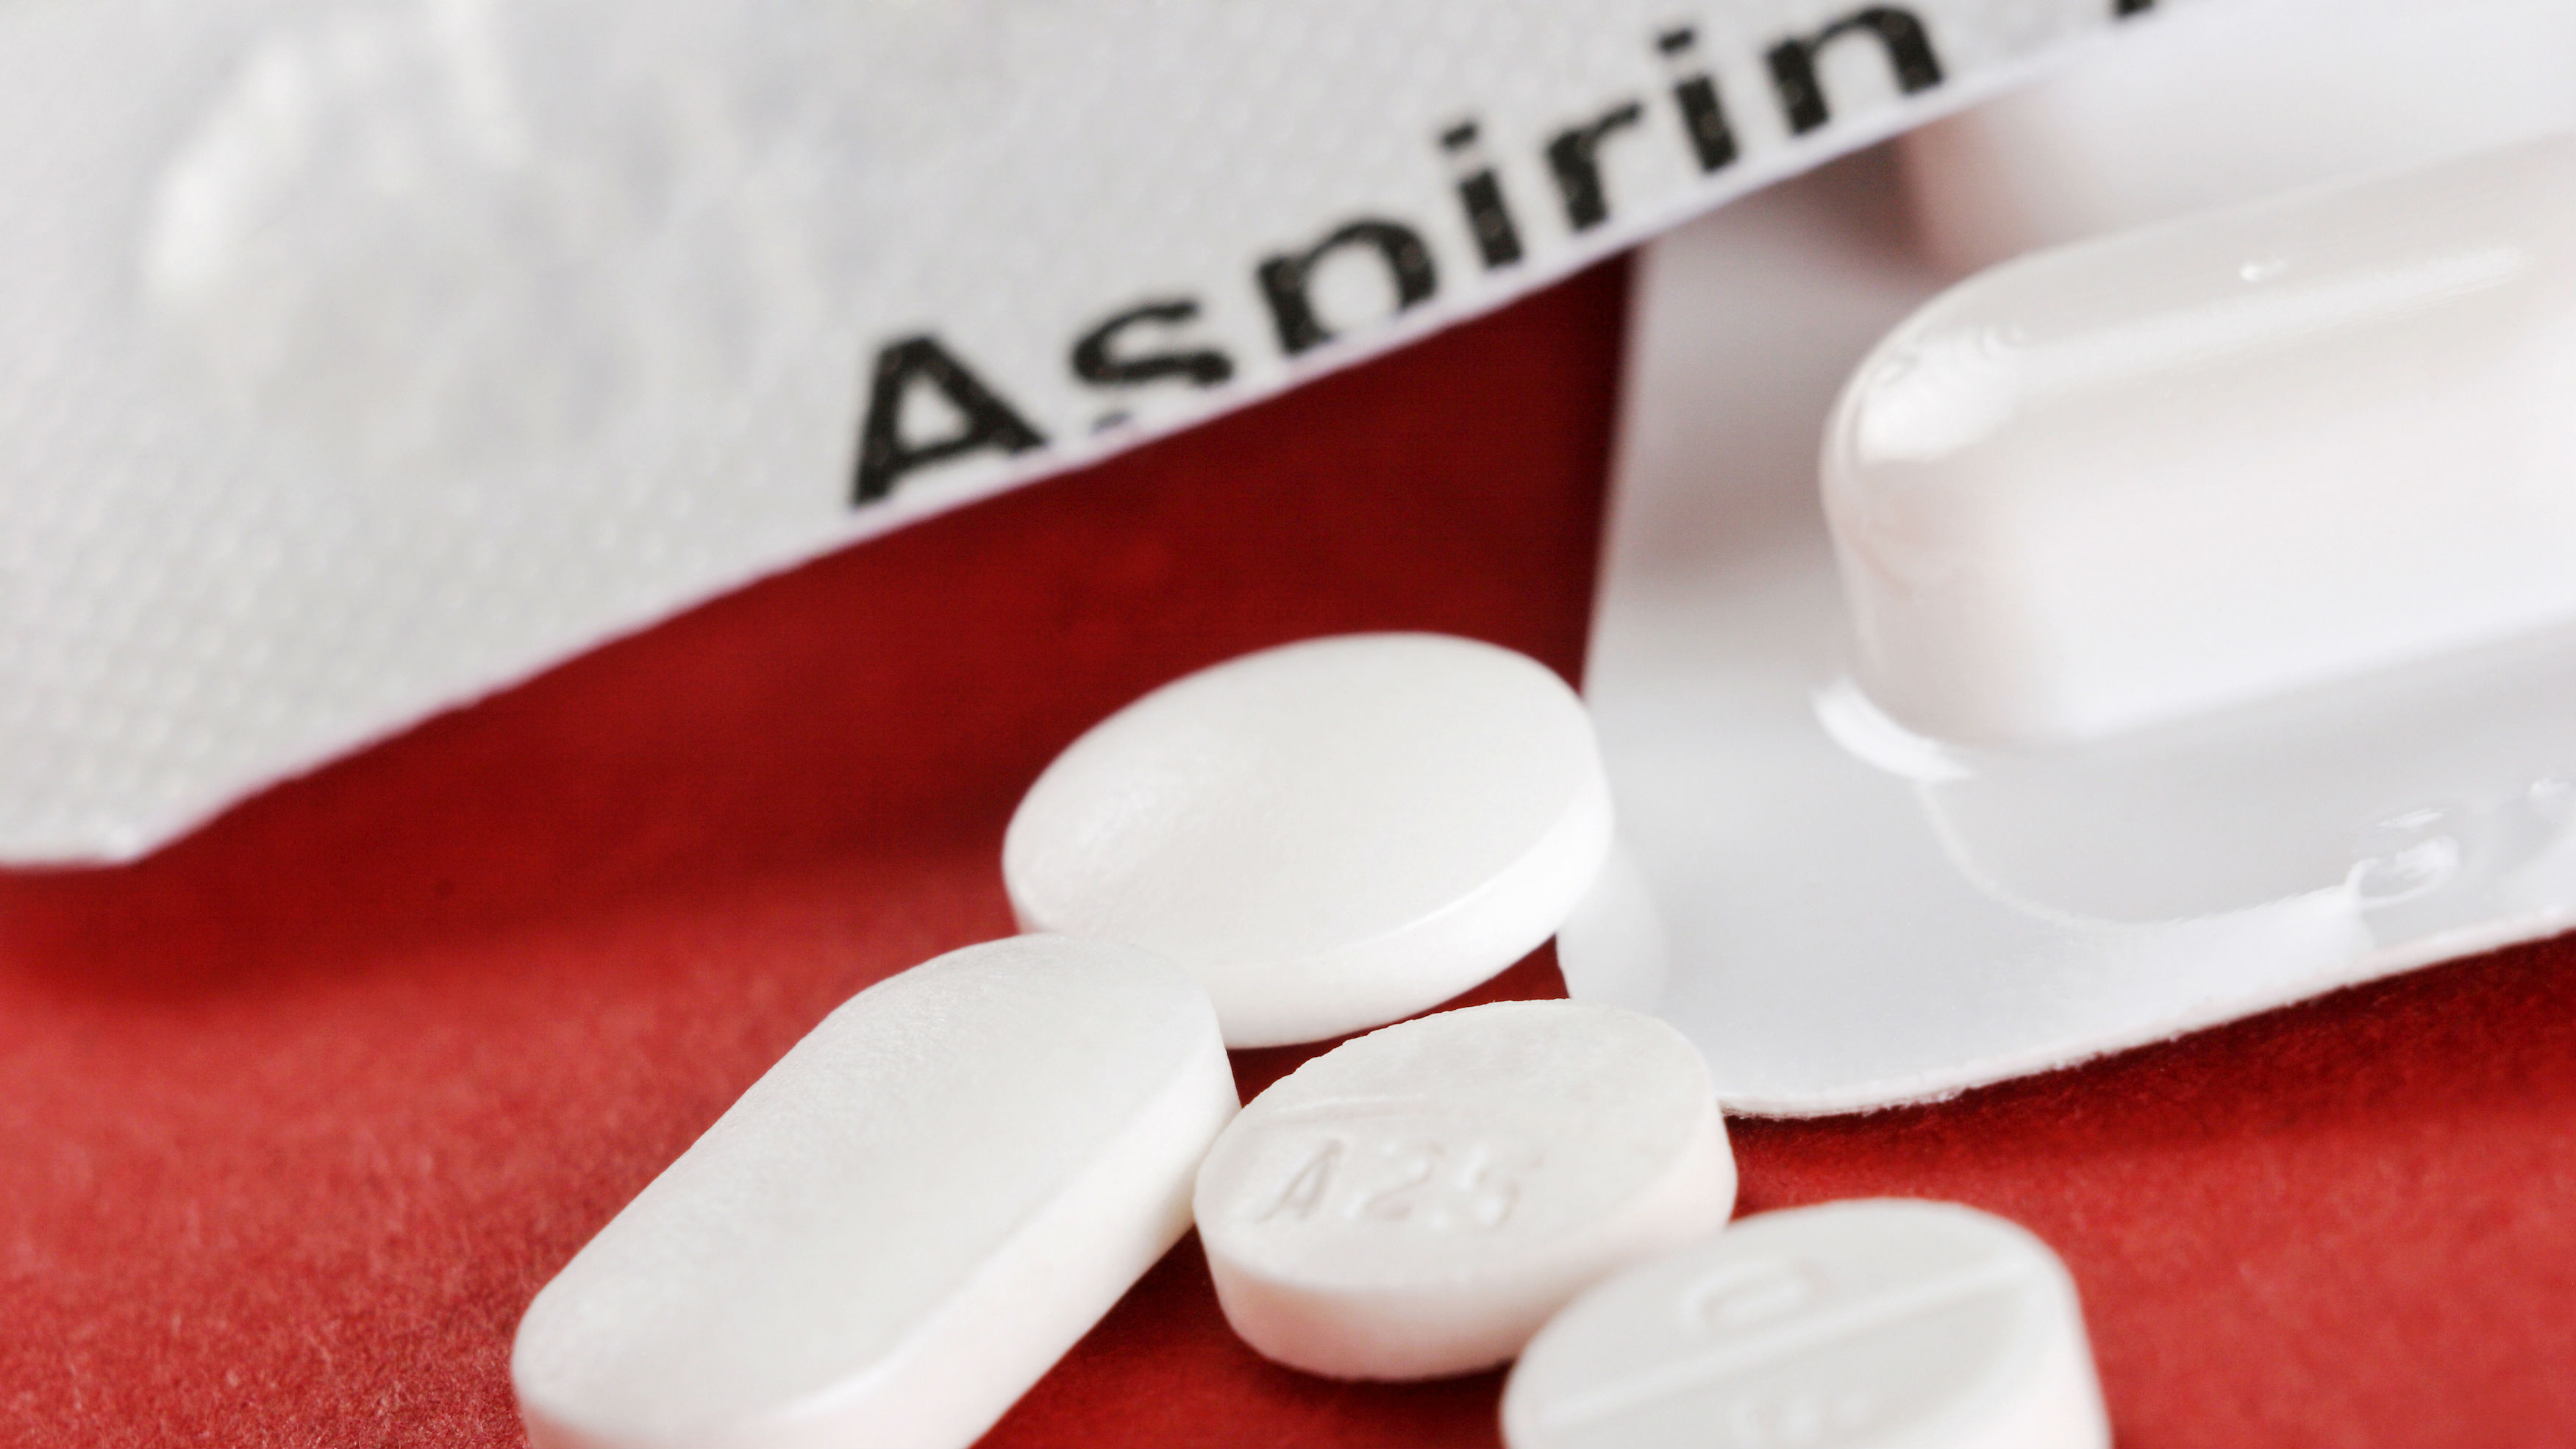 Daily Aspirin May Help Fight Prostate Cancer, But Not Breast Cancer